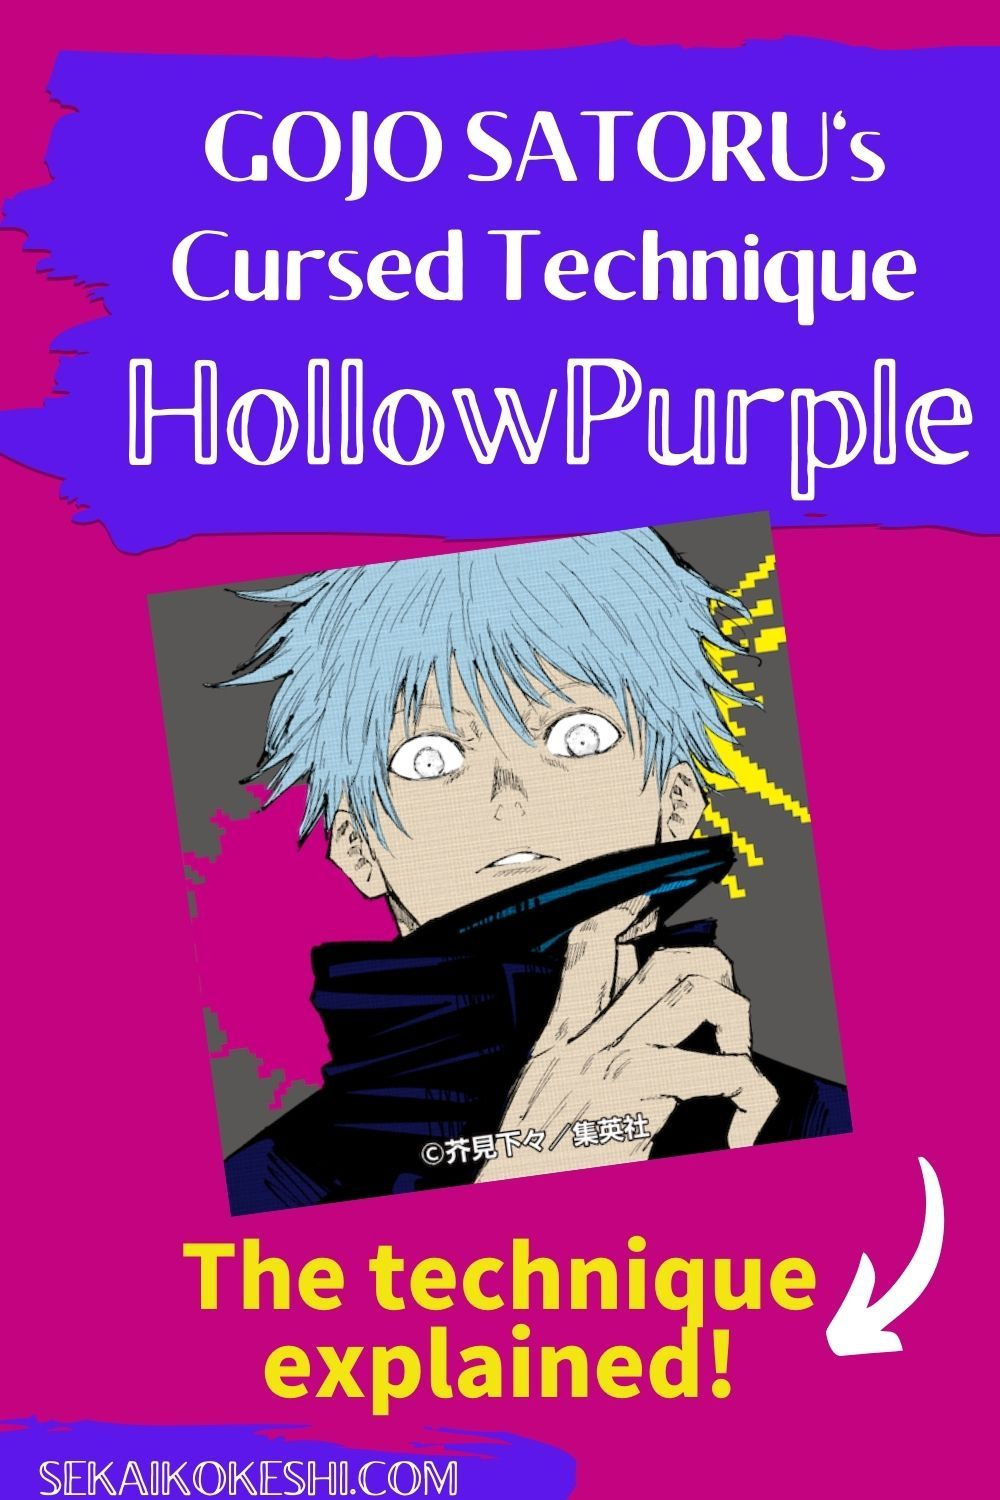 Gojo Satoru S Cursed Technique Hollow Purple Explained By A Native Japanese Jujutsu Kaisen In 2021 Jujutsu Fun Facts This Or That Questions